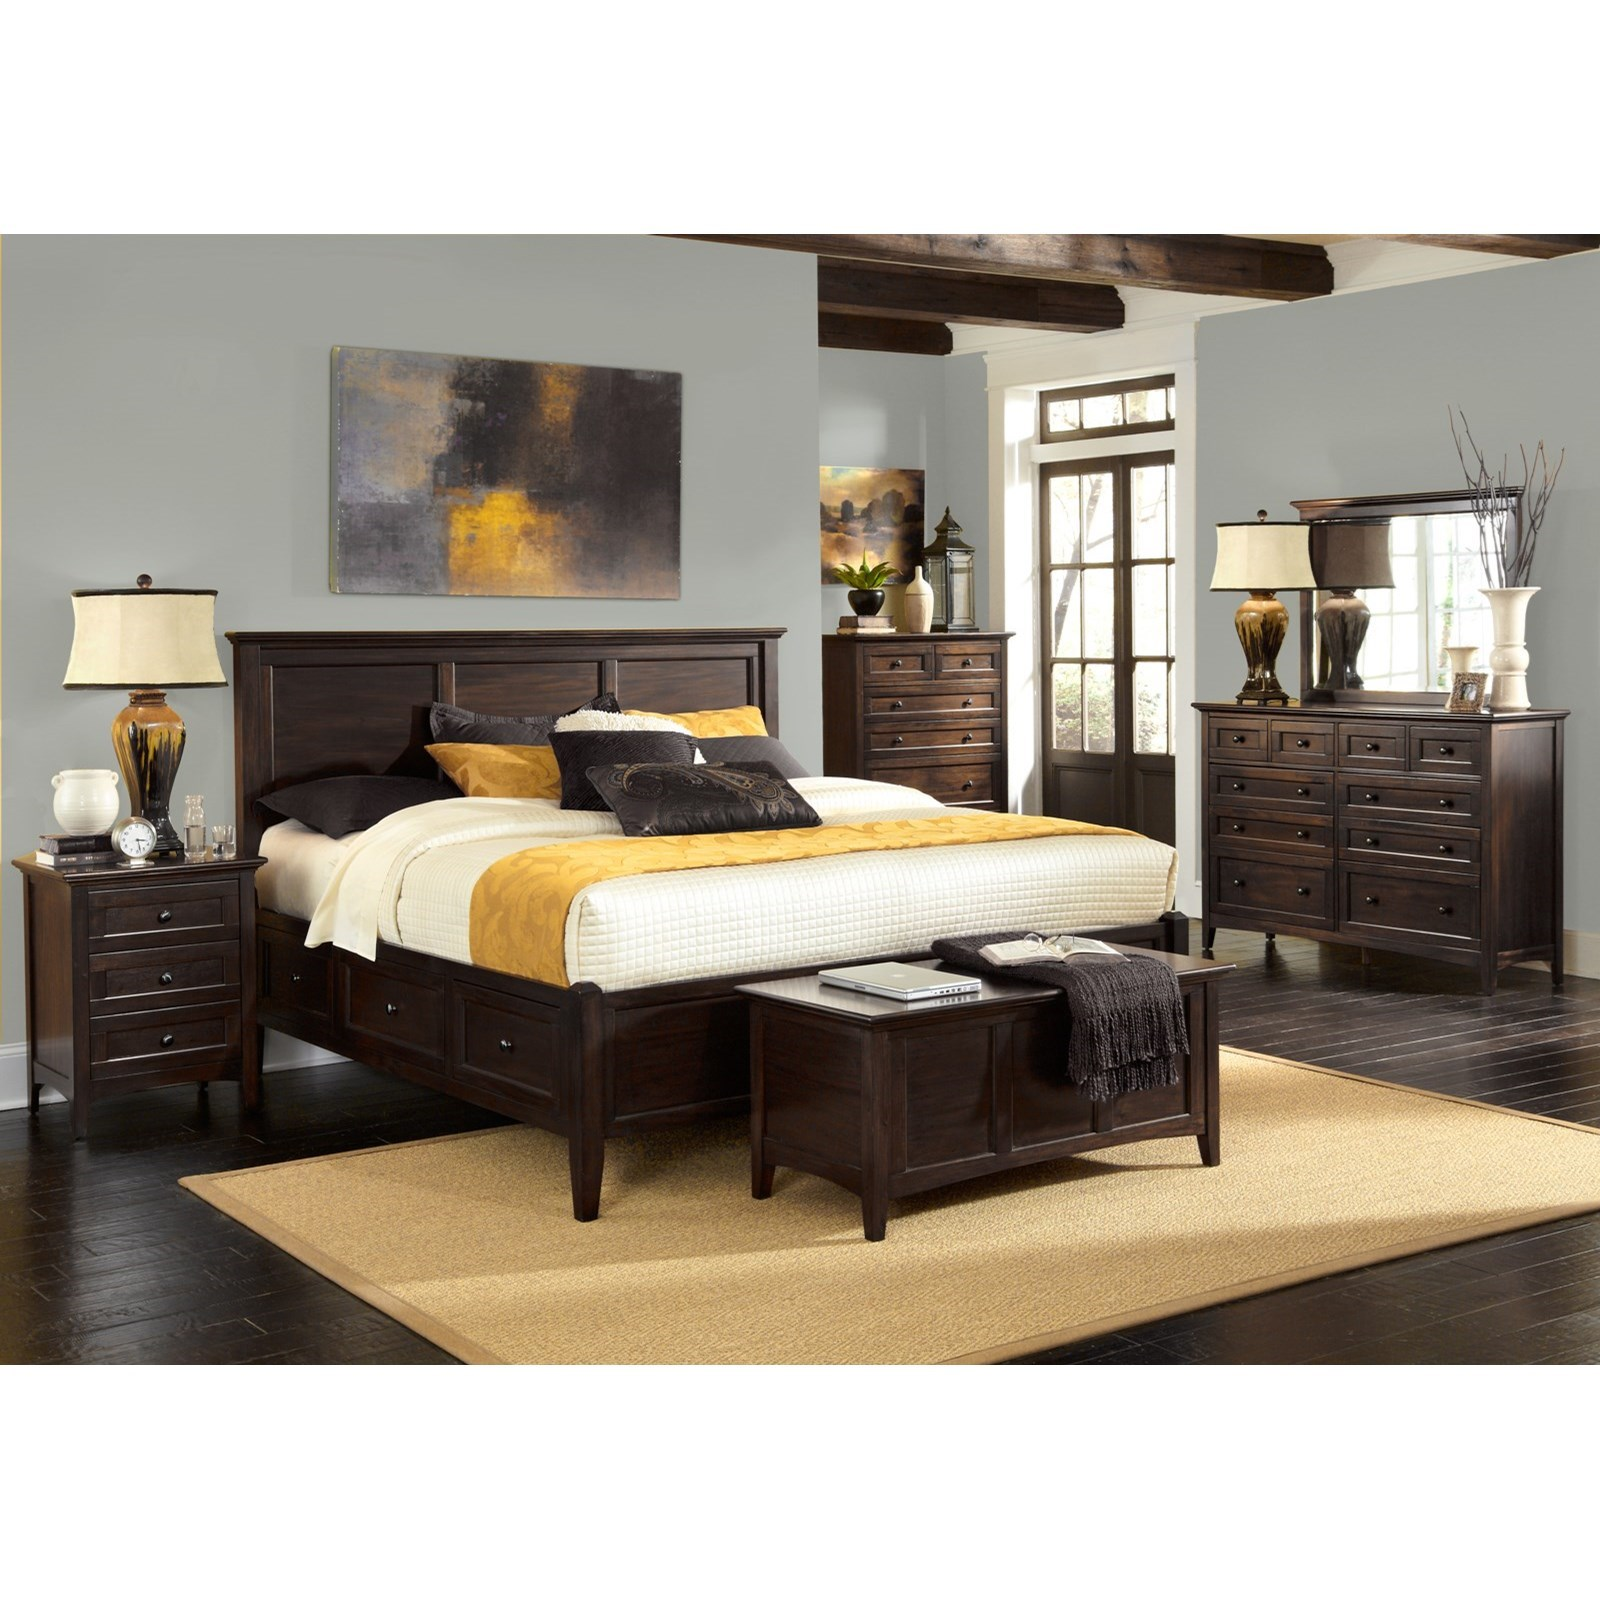 Westlake Queen Storage Bedroom Group by A-A at Walker's Furniture